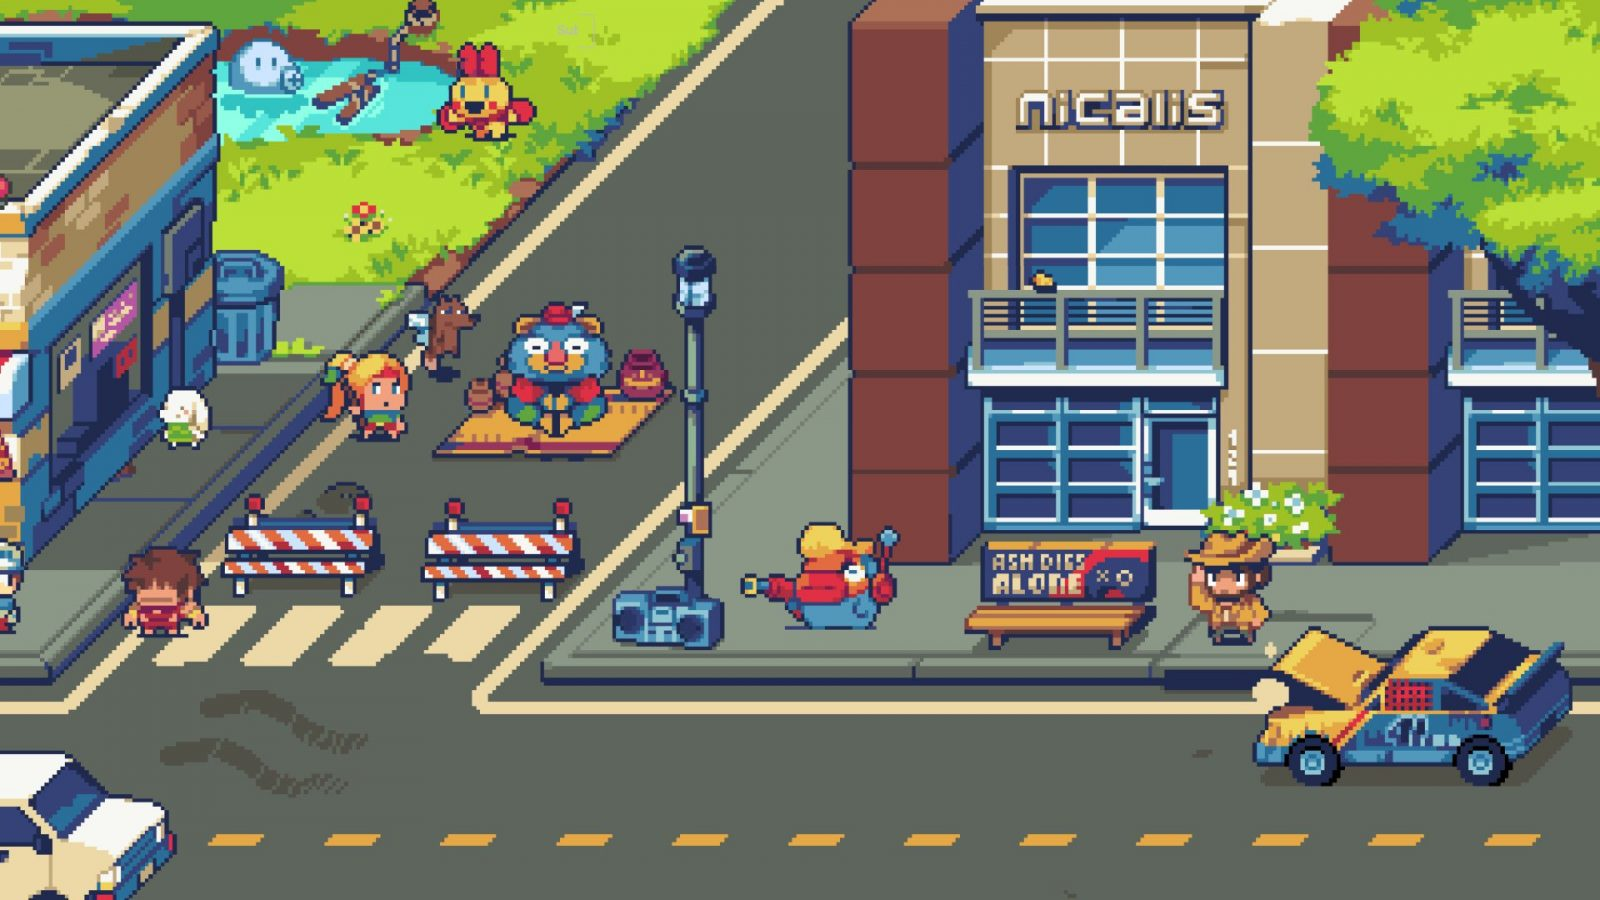 Indie Publisher Nicalis Accused of Ghosting Developers, Withholding Patches